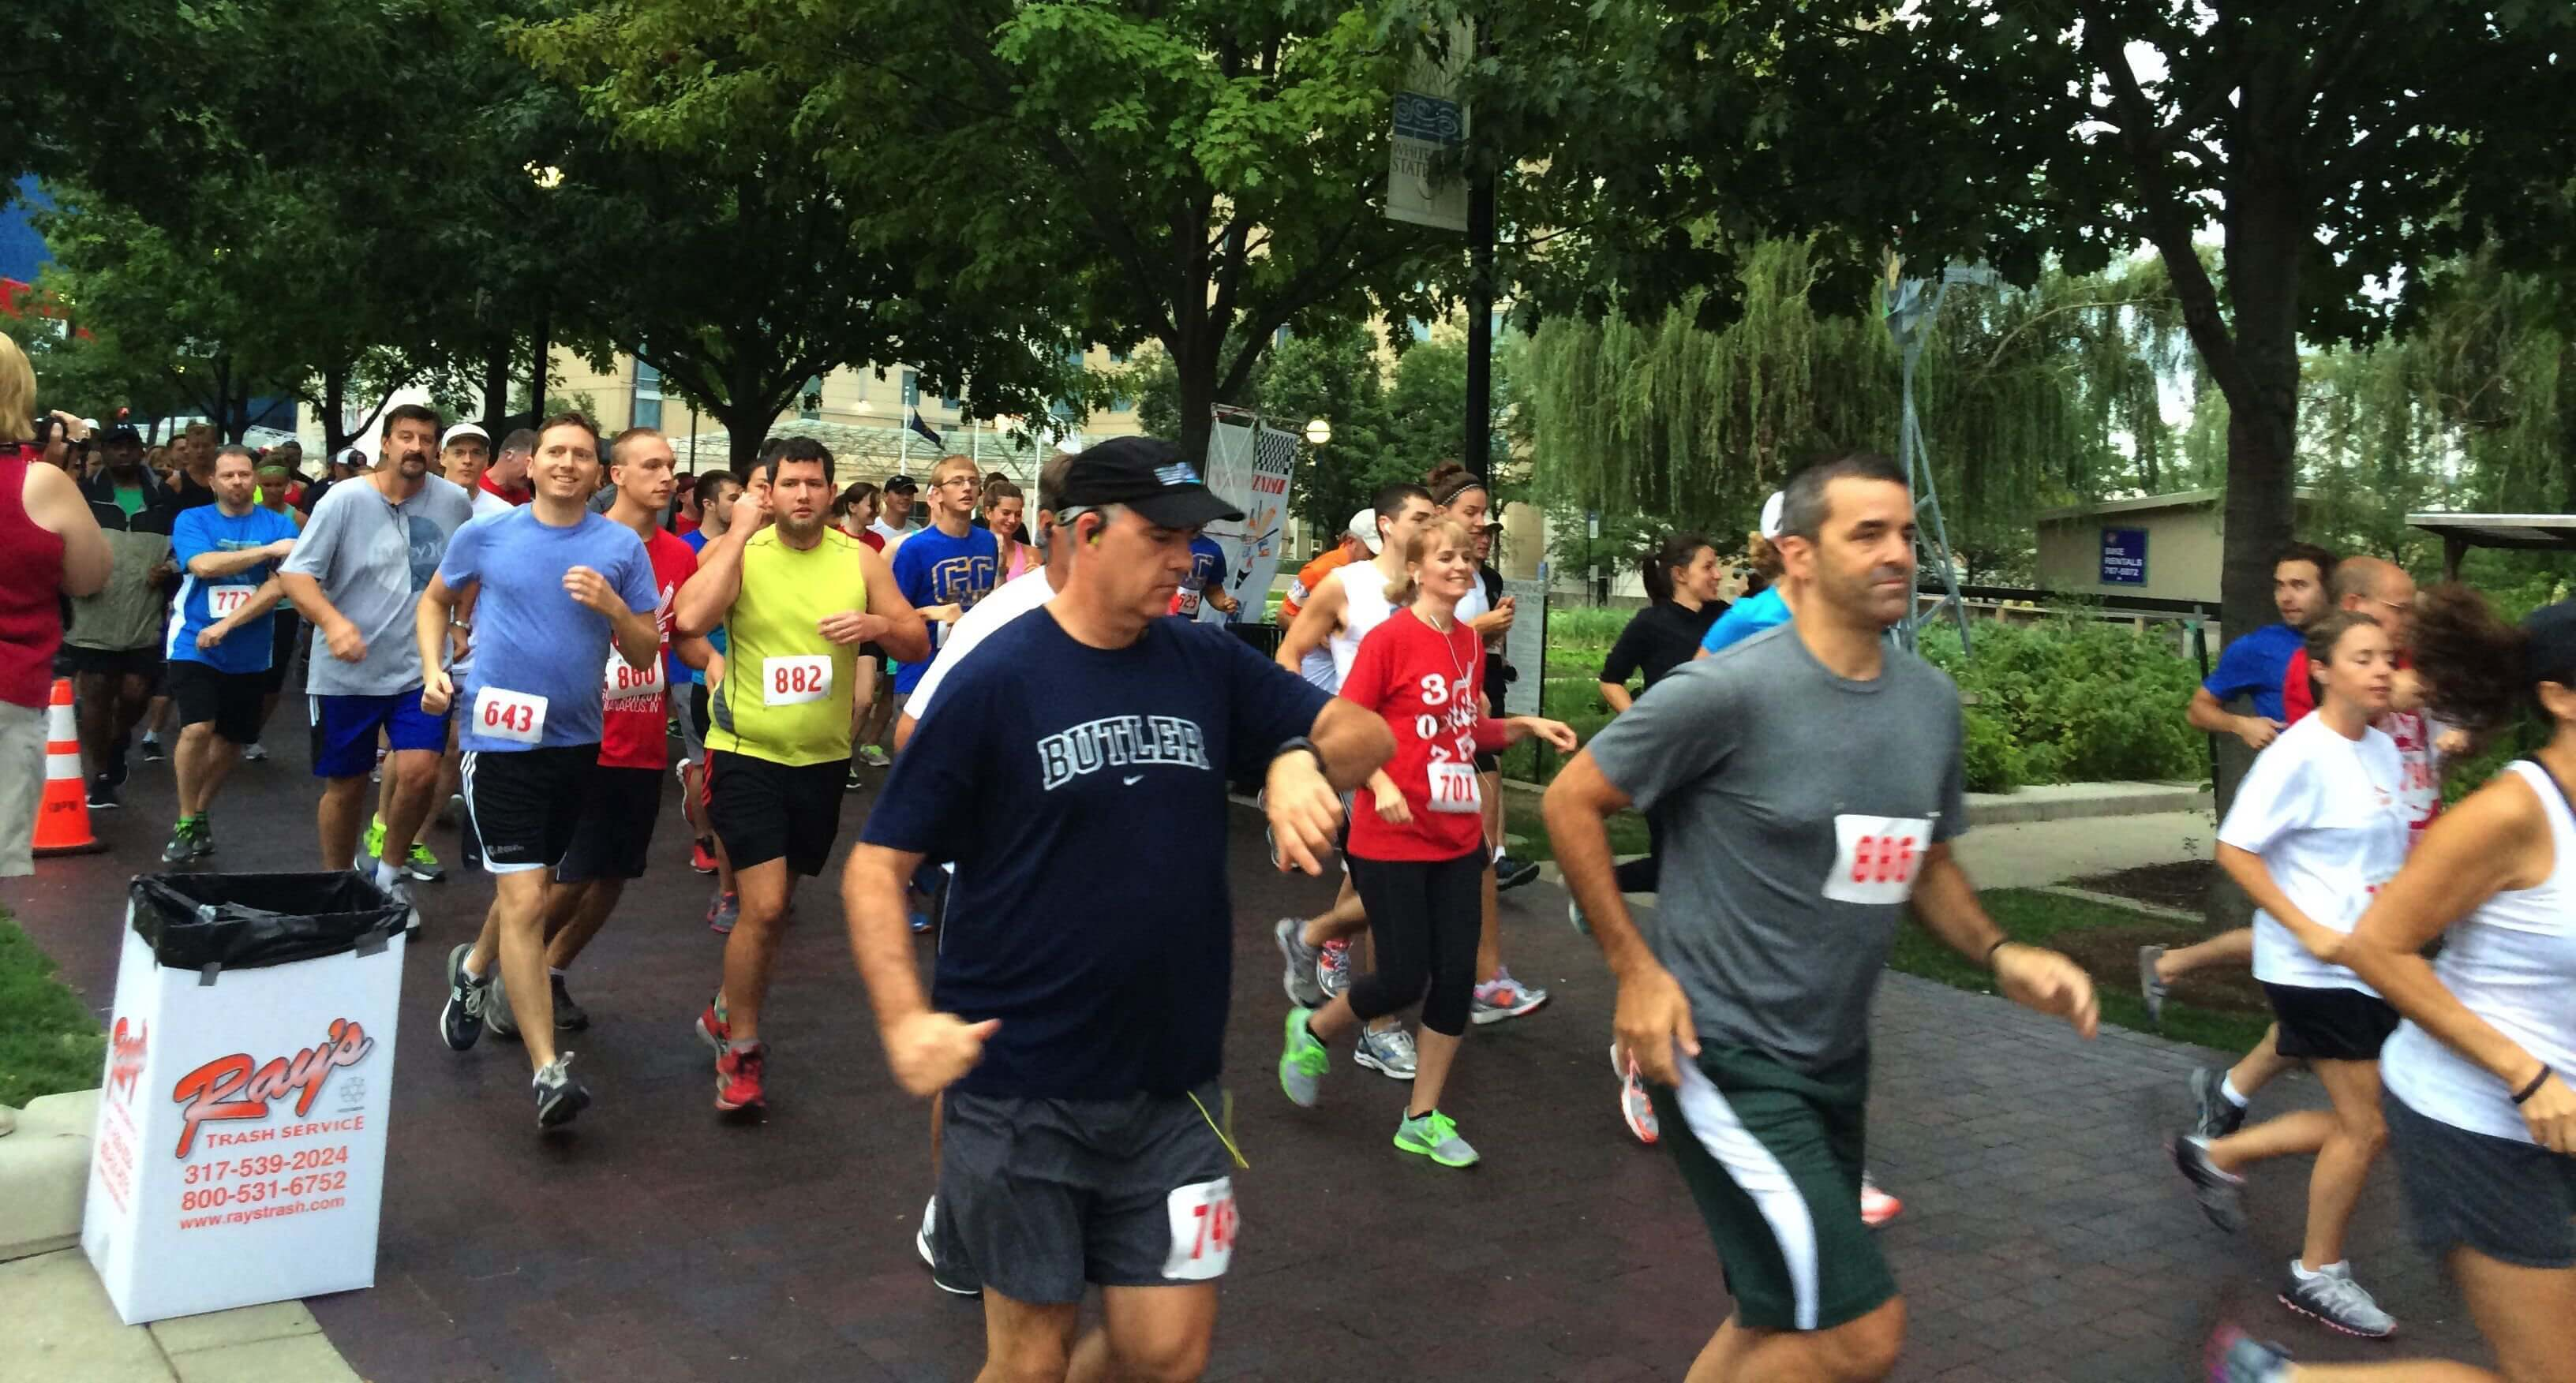 Street Beat 5K sprints into its second year